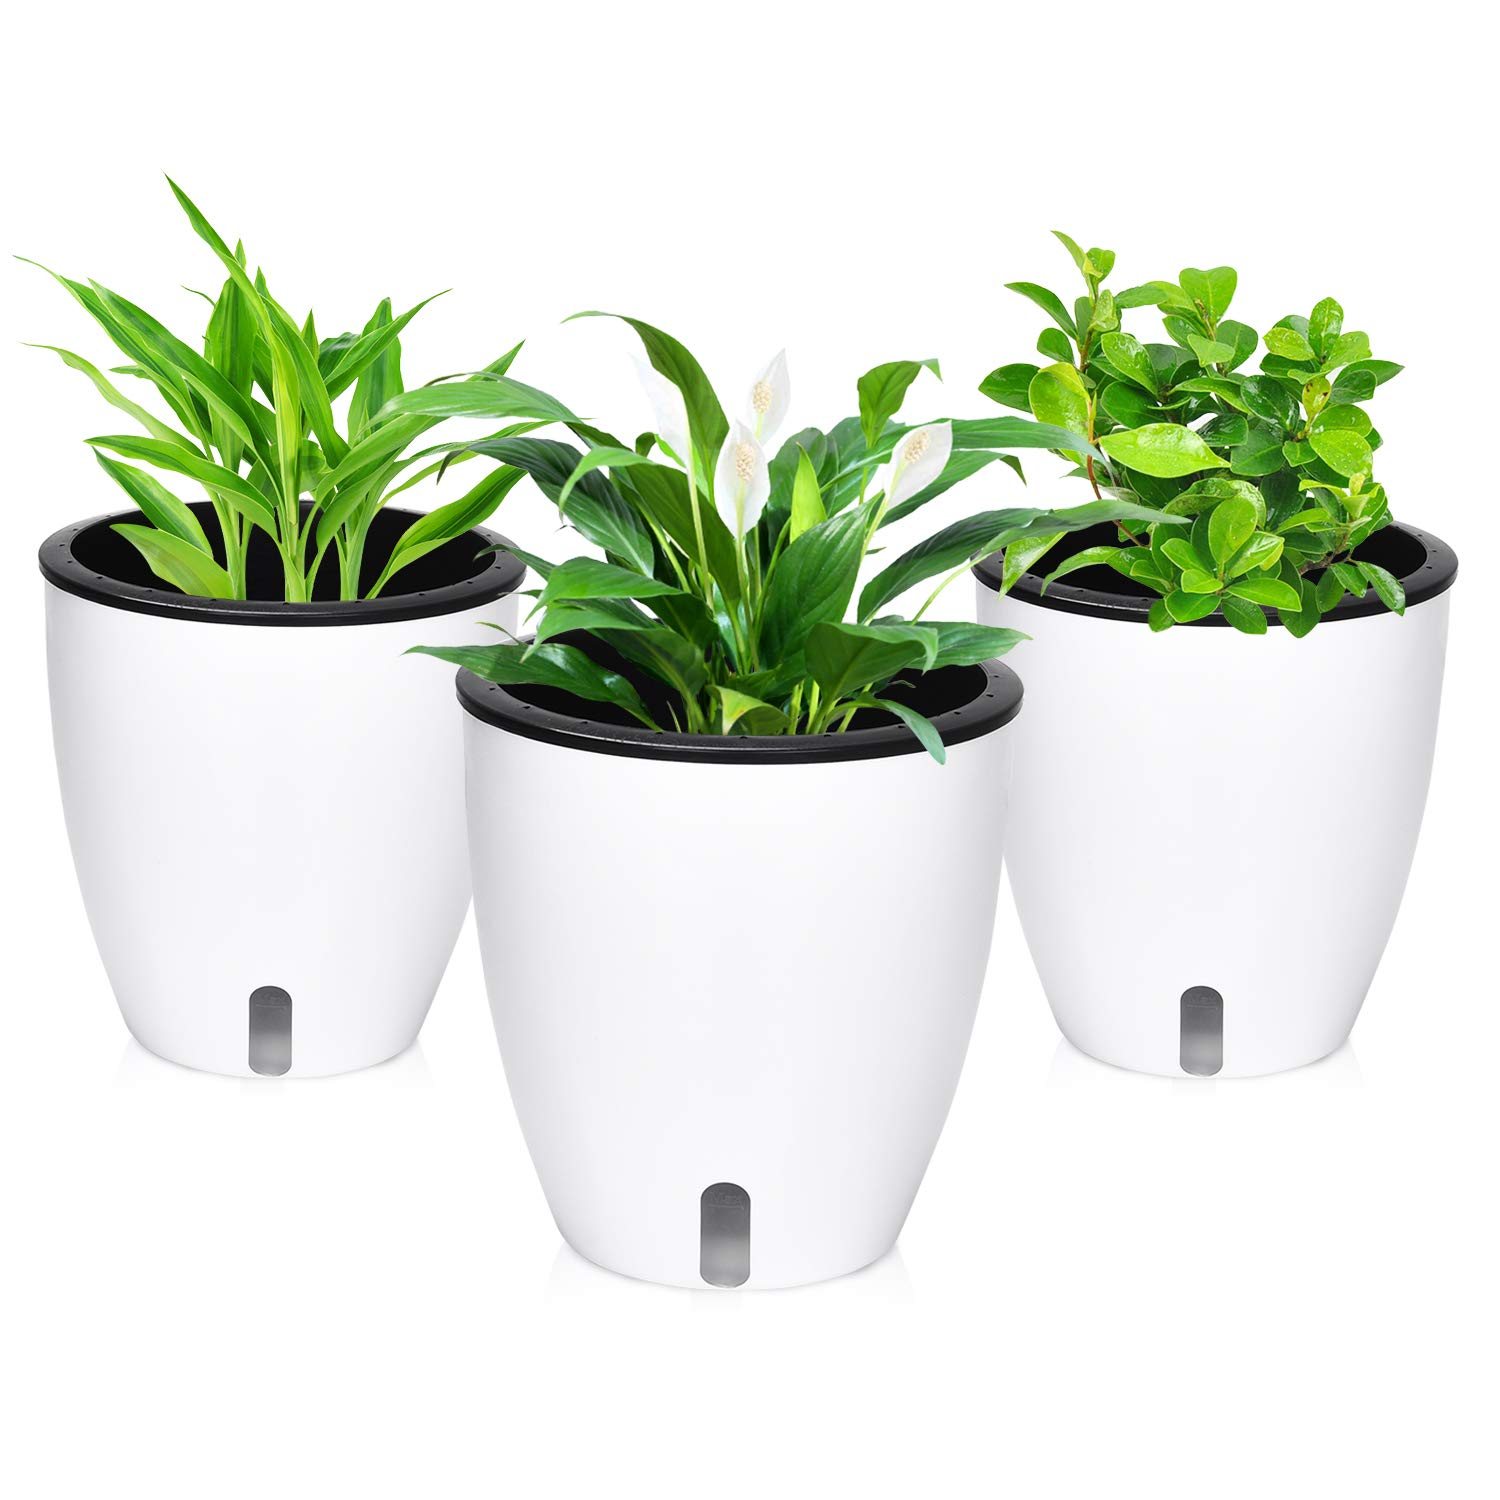 225 & Self Watering Planter Plastic Self Watering Flower Pots for African Violet White Planter Pot with Cotton Rope for Indoor Plants Set of 3 7.2\